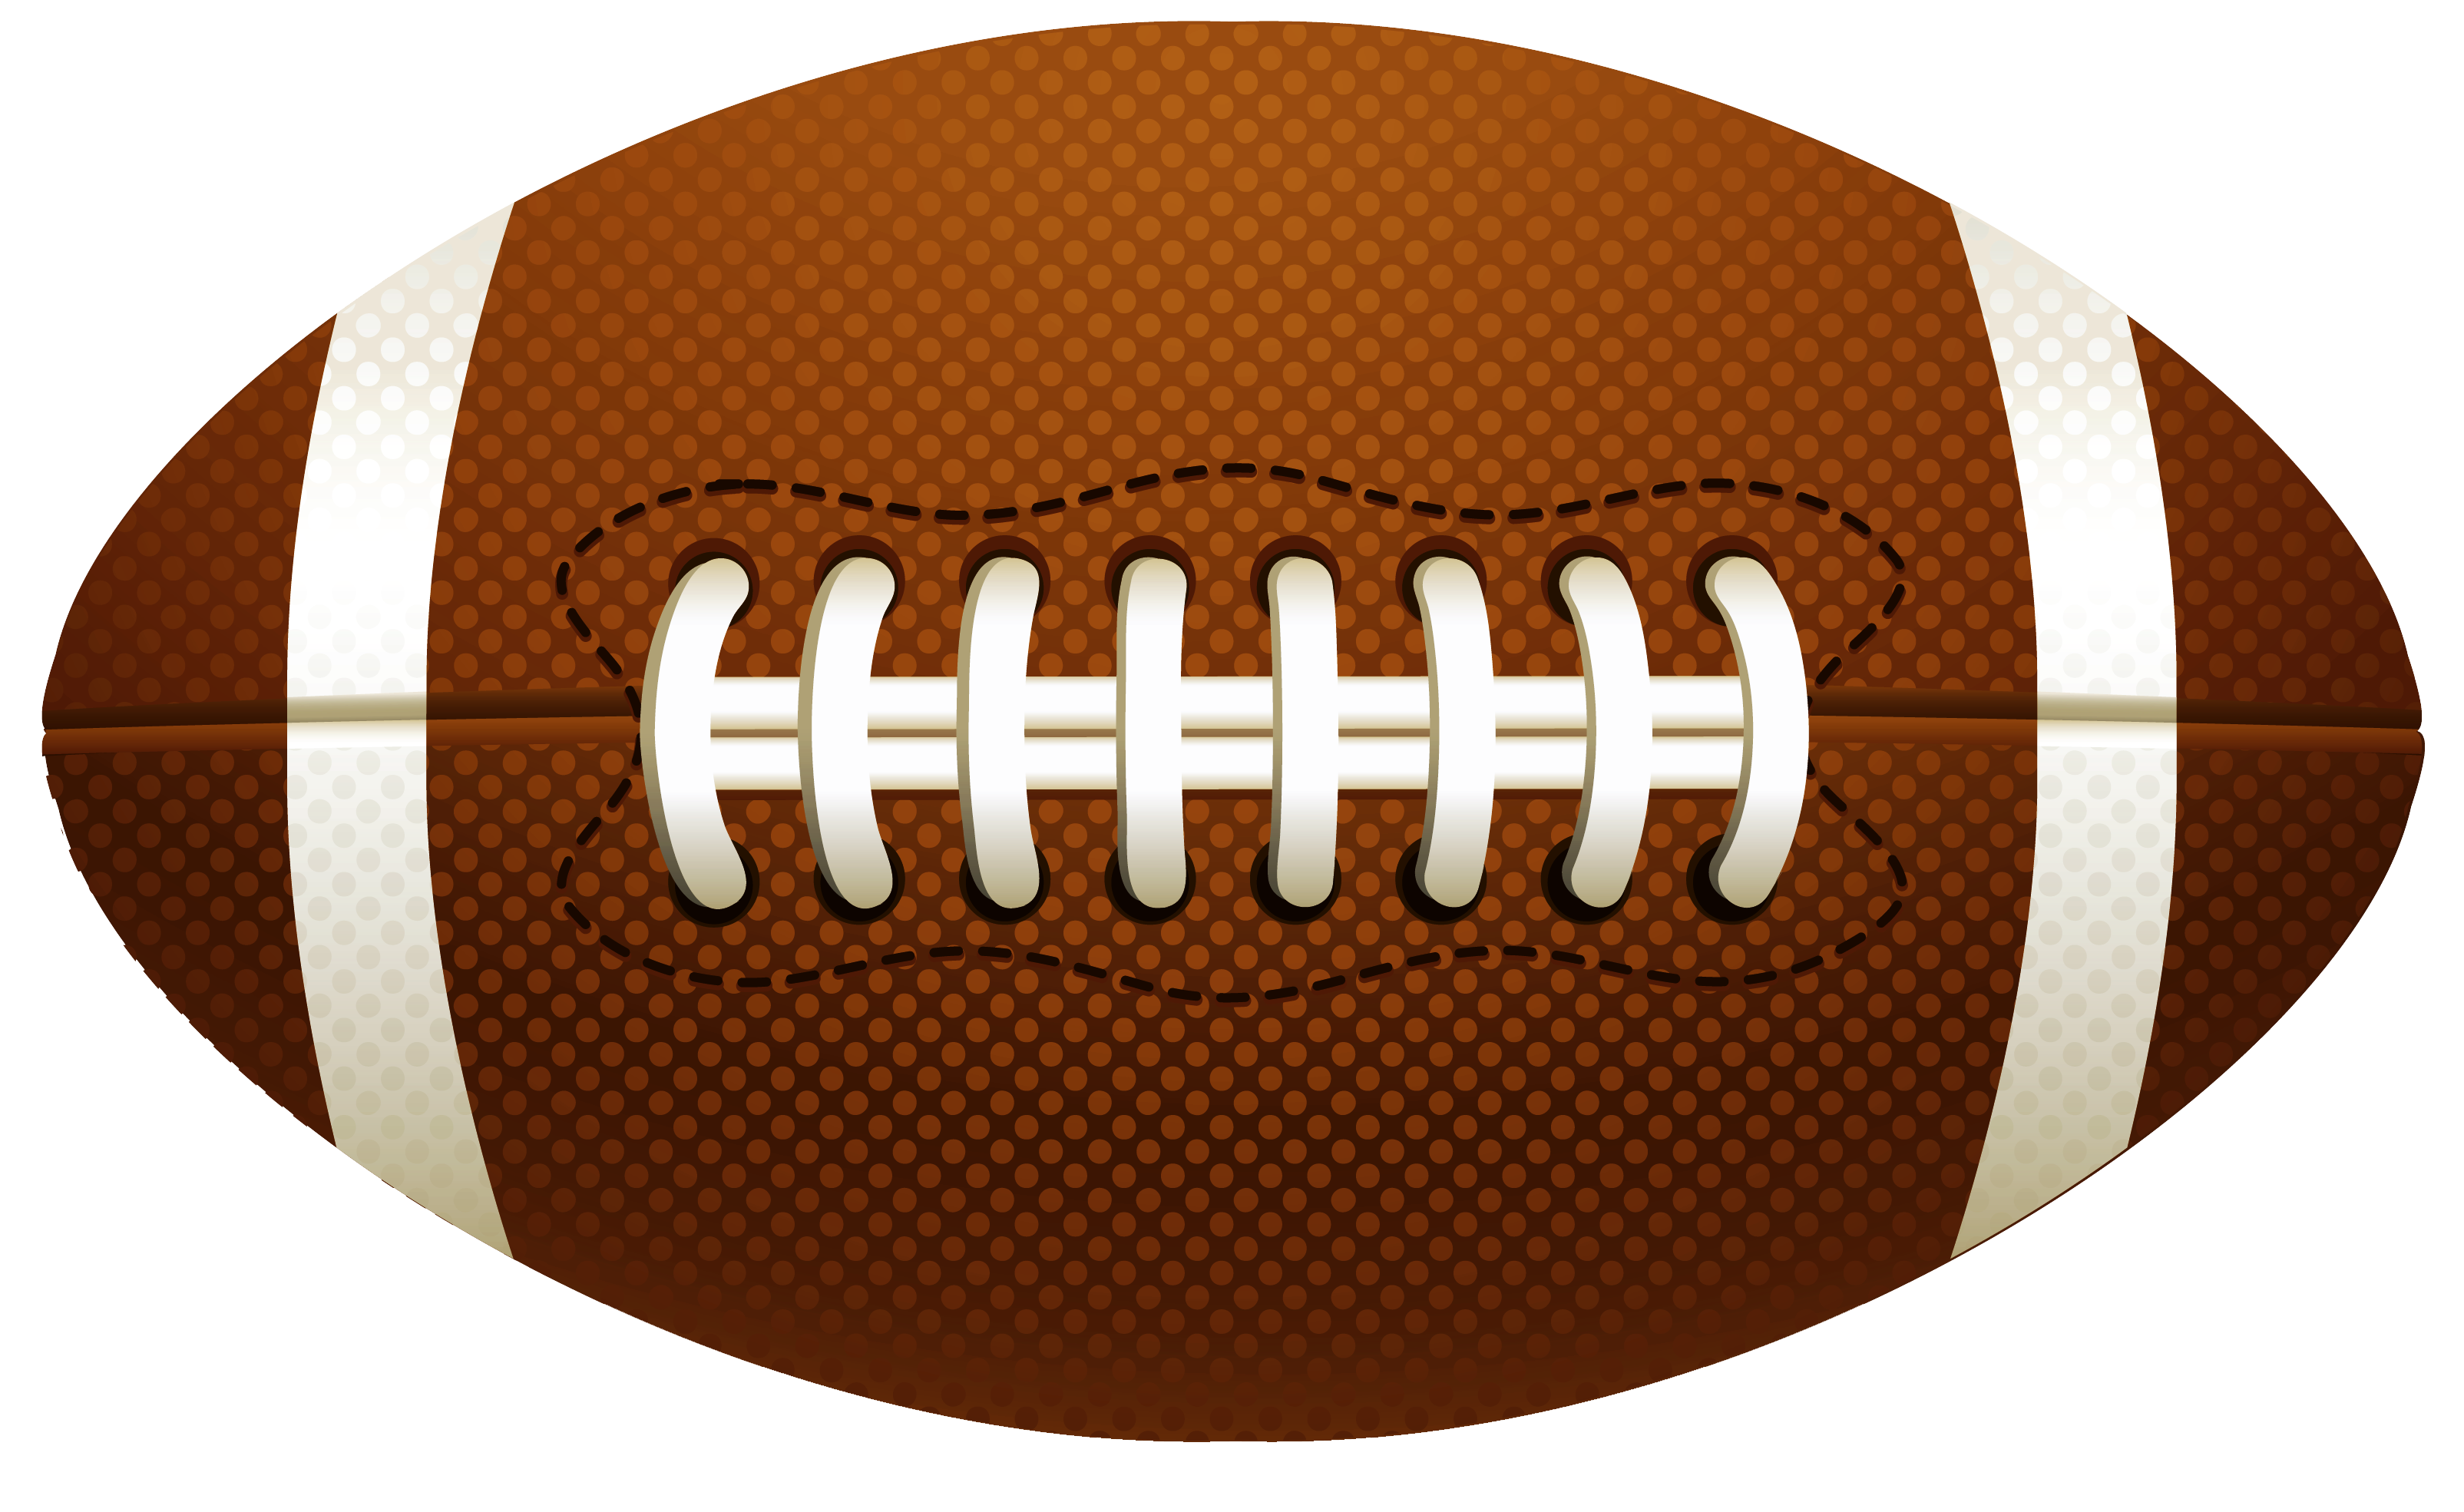 Packers football clipart clipart stock American Football Ball PNG Vector Clipart | Interests | Pinterest ... clipart stock